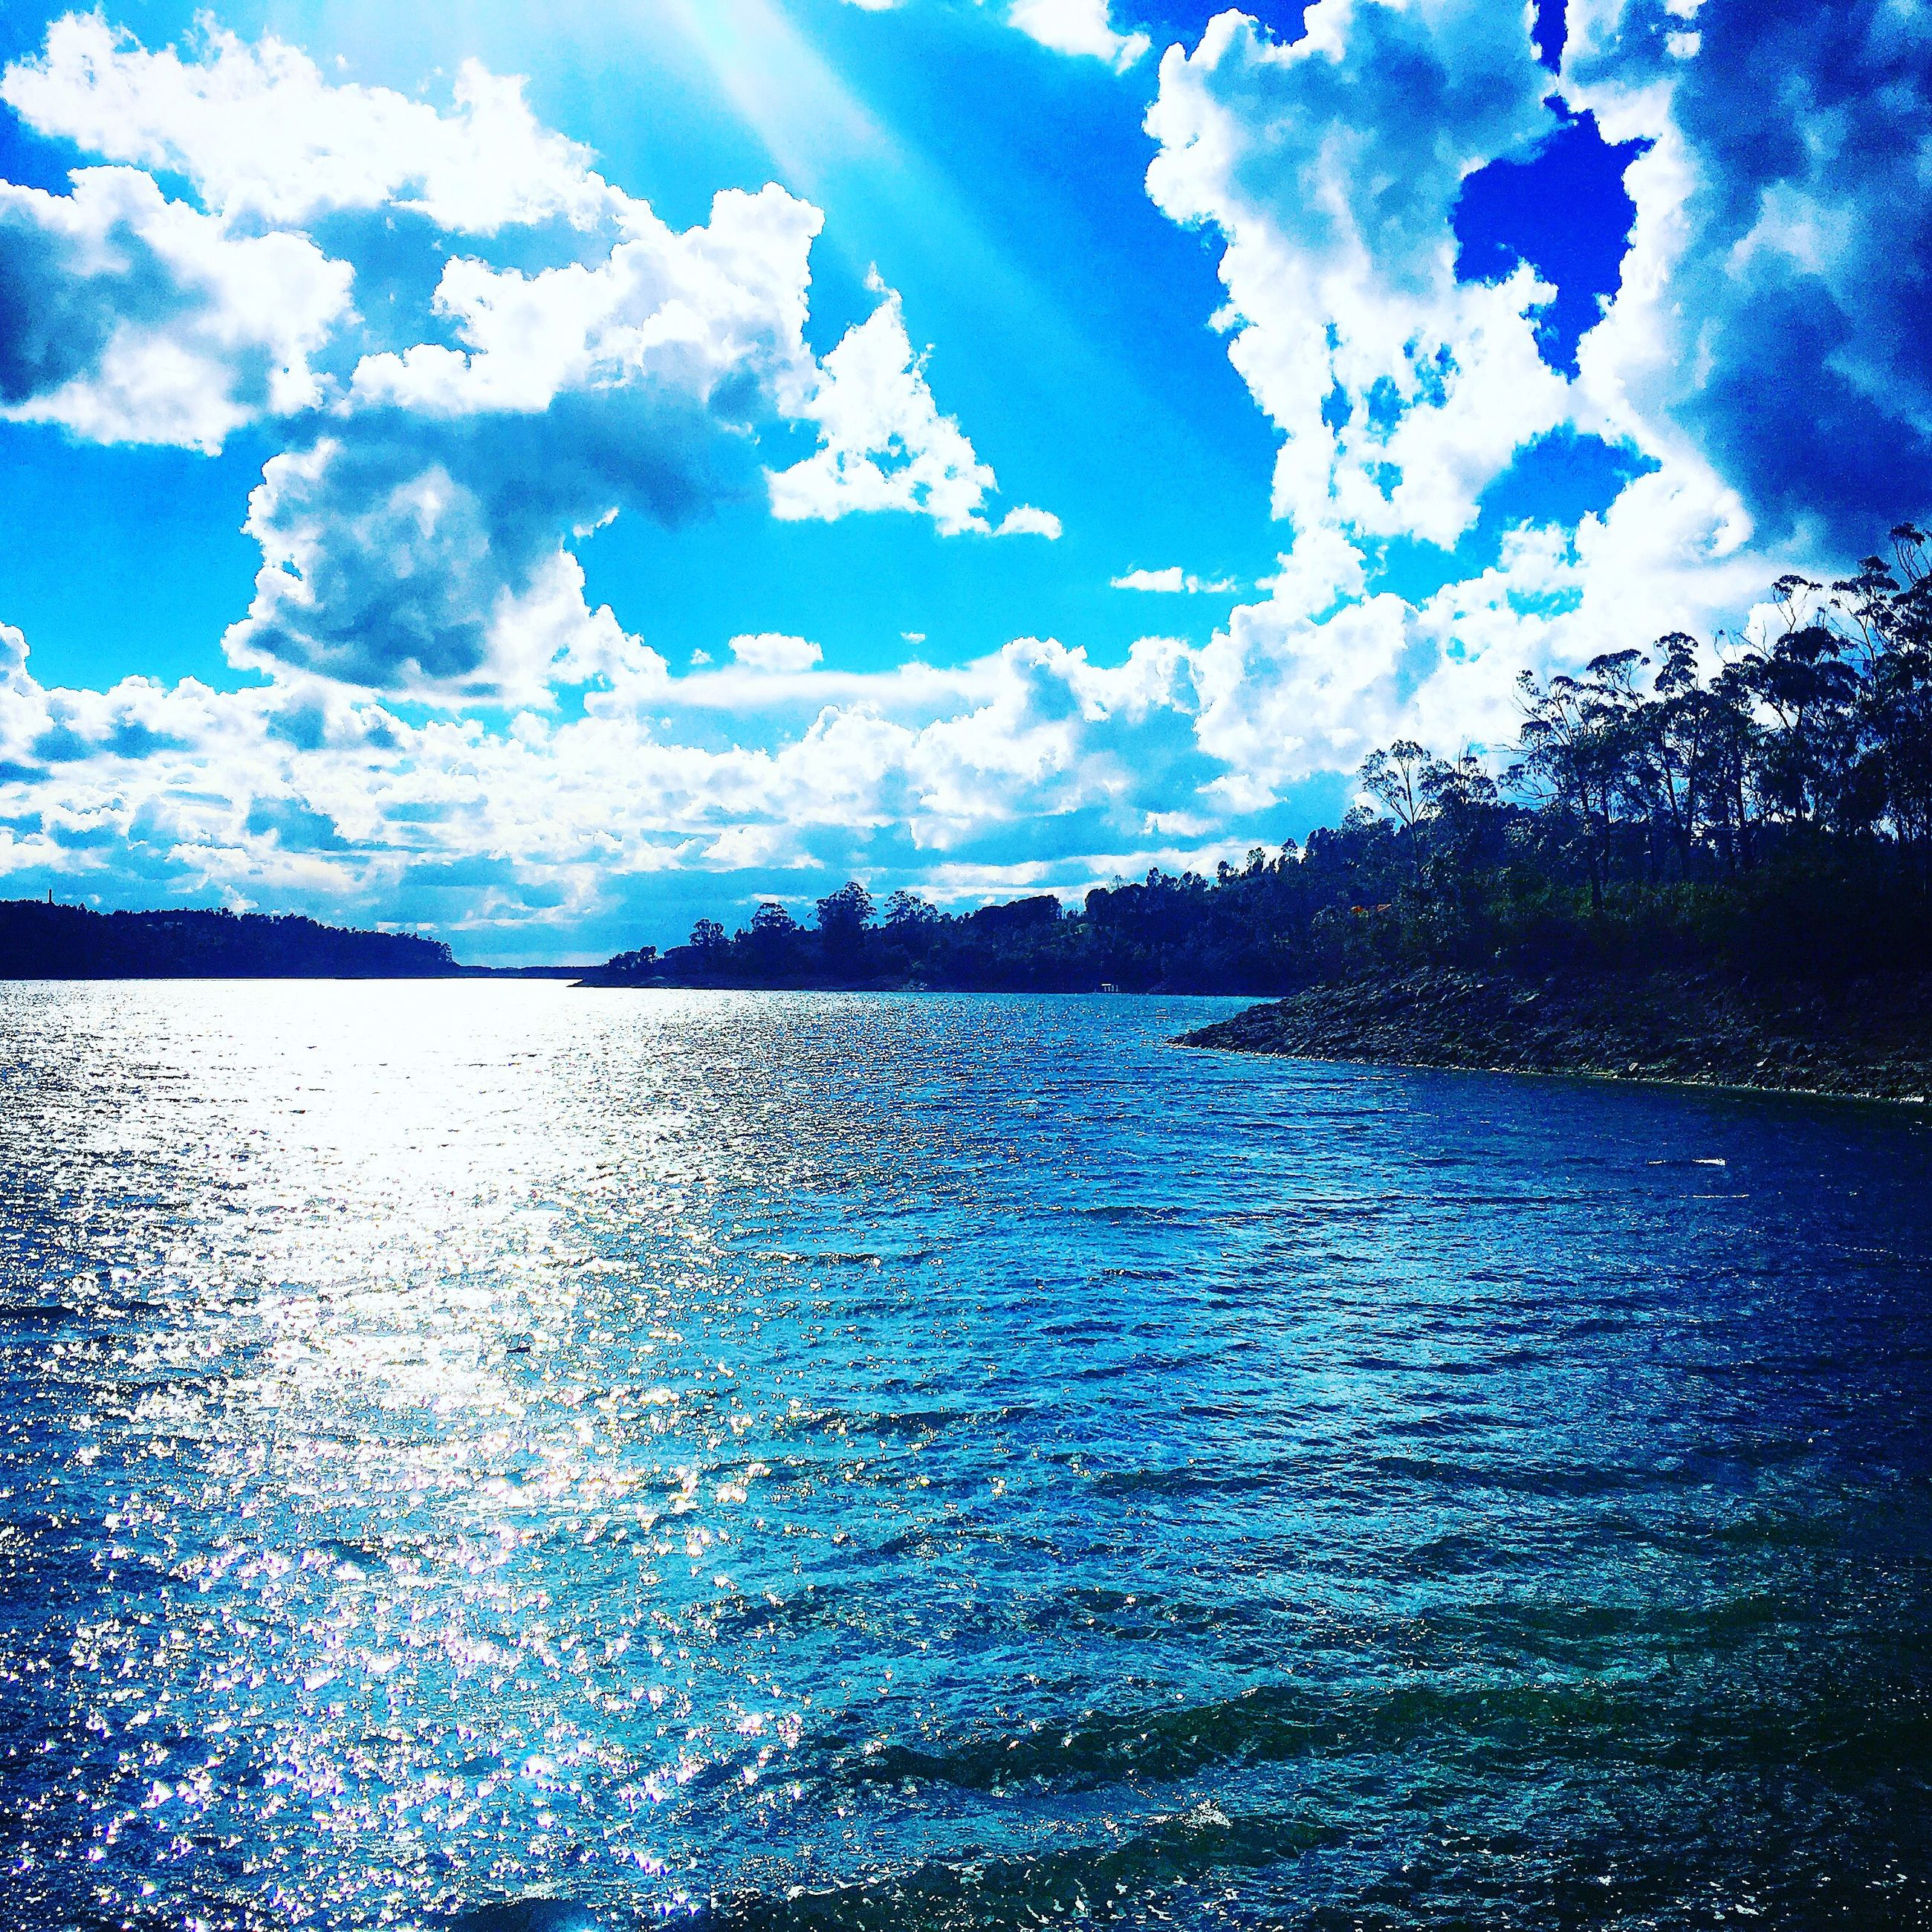 sky, blue, cloud - sky, nature, water, outdoors, no people, day, scenics, beauty in nature, togetherness, pixelated